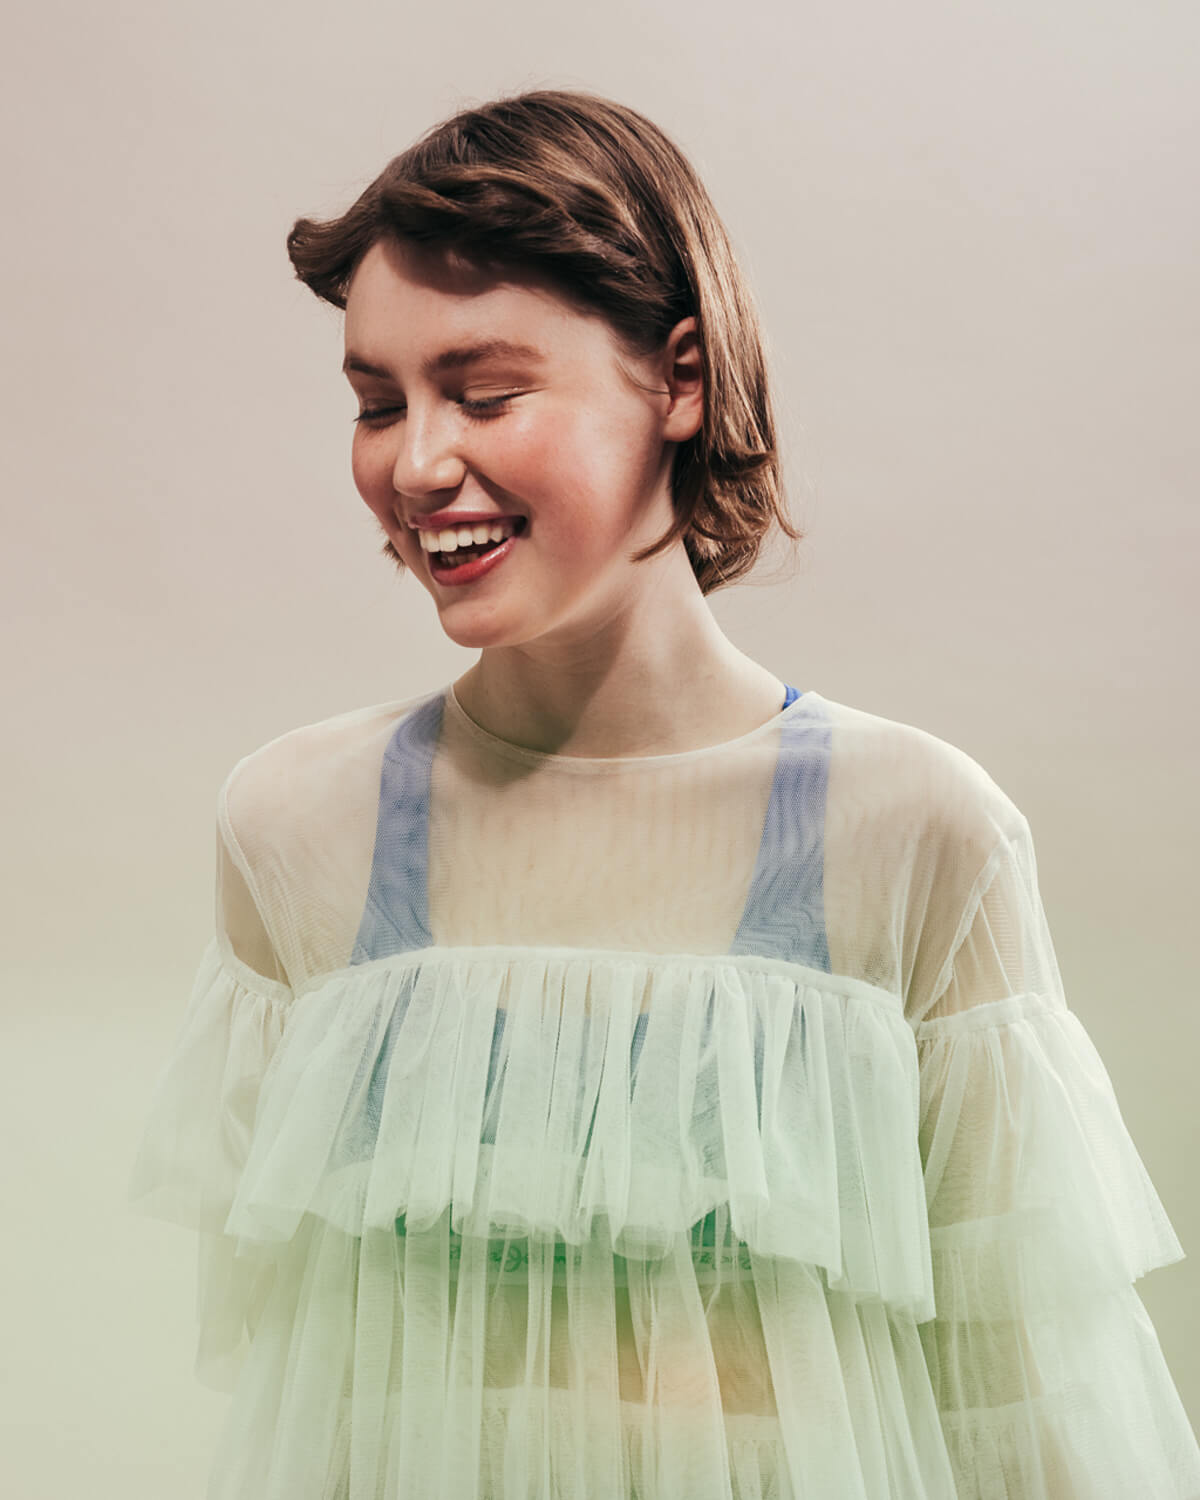 Girl smiley,, frilly sheer top,  by portrait photographer Tim Cole